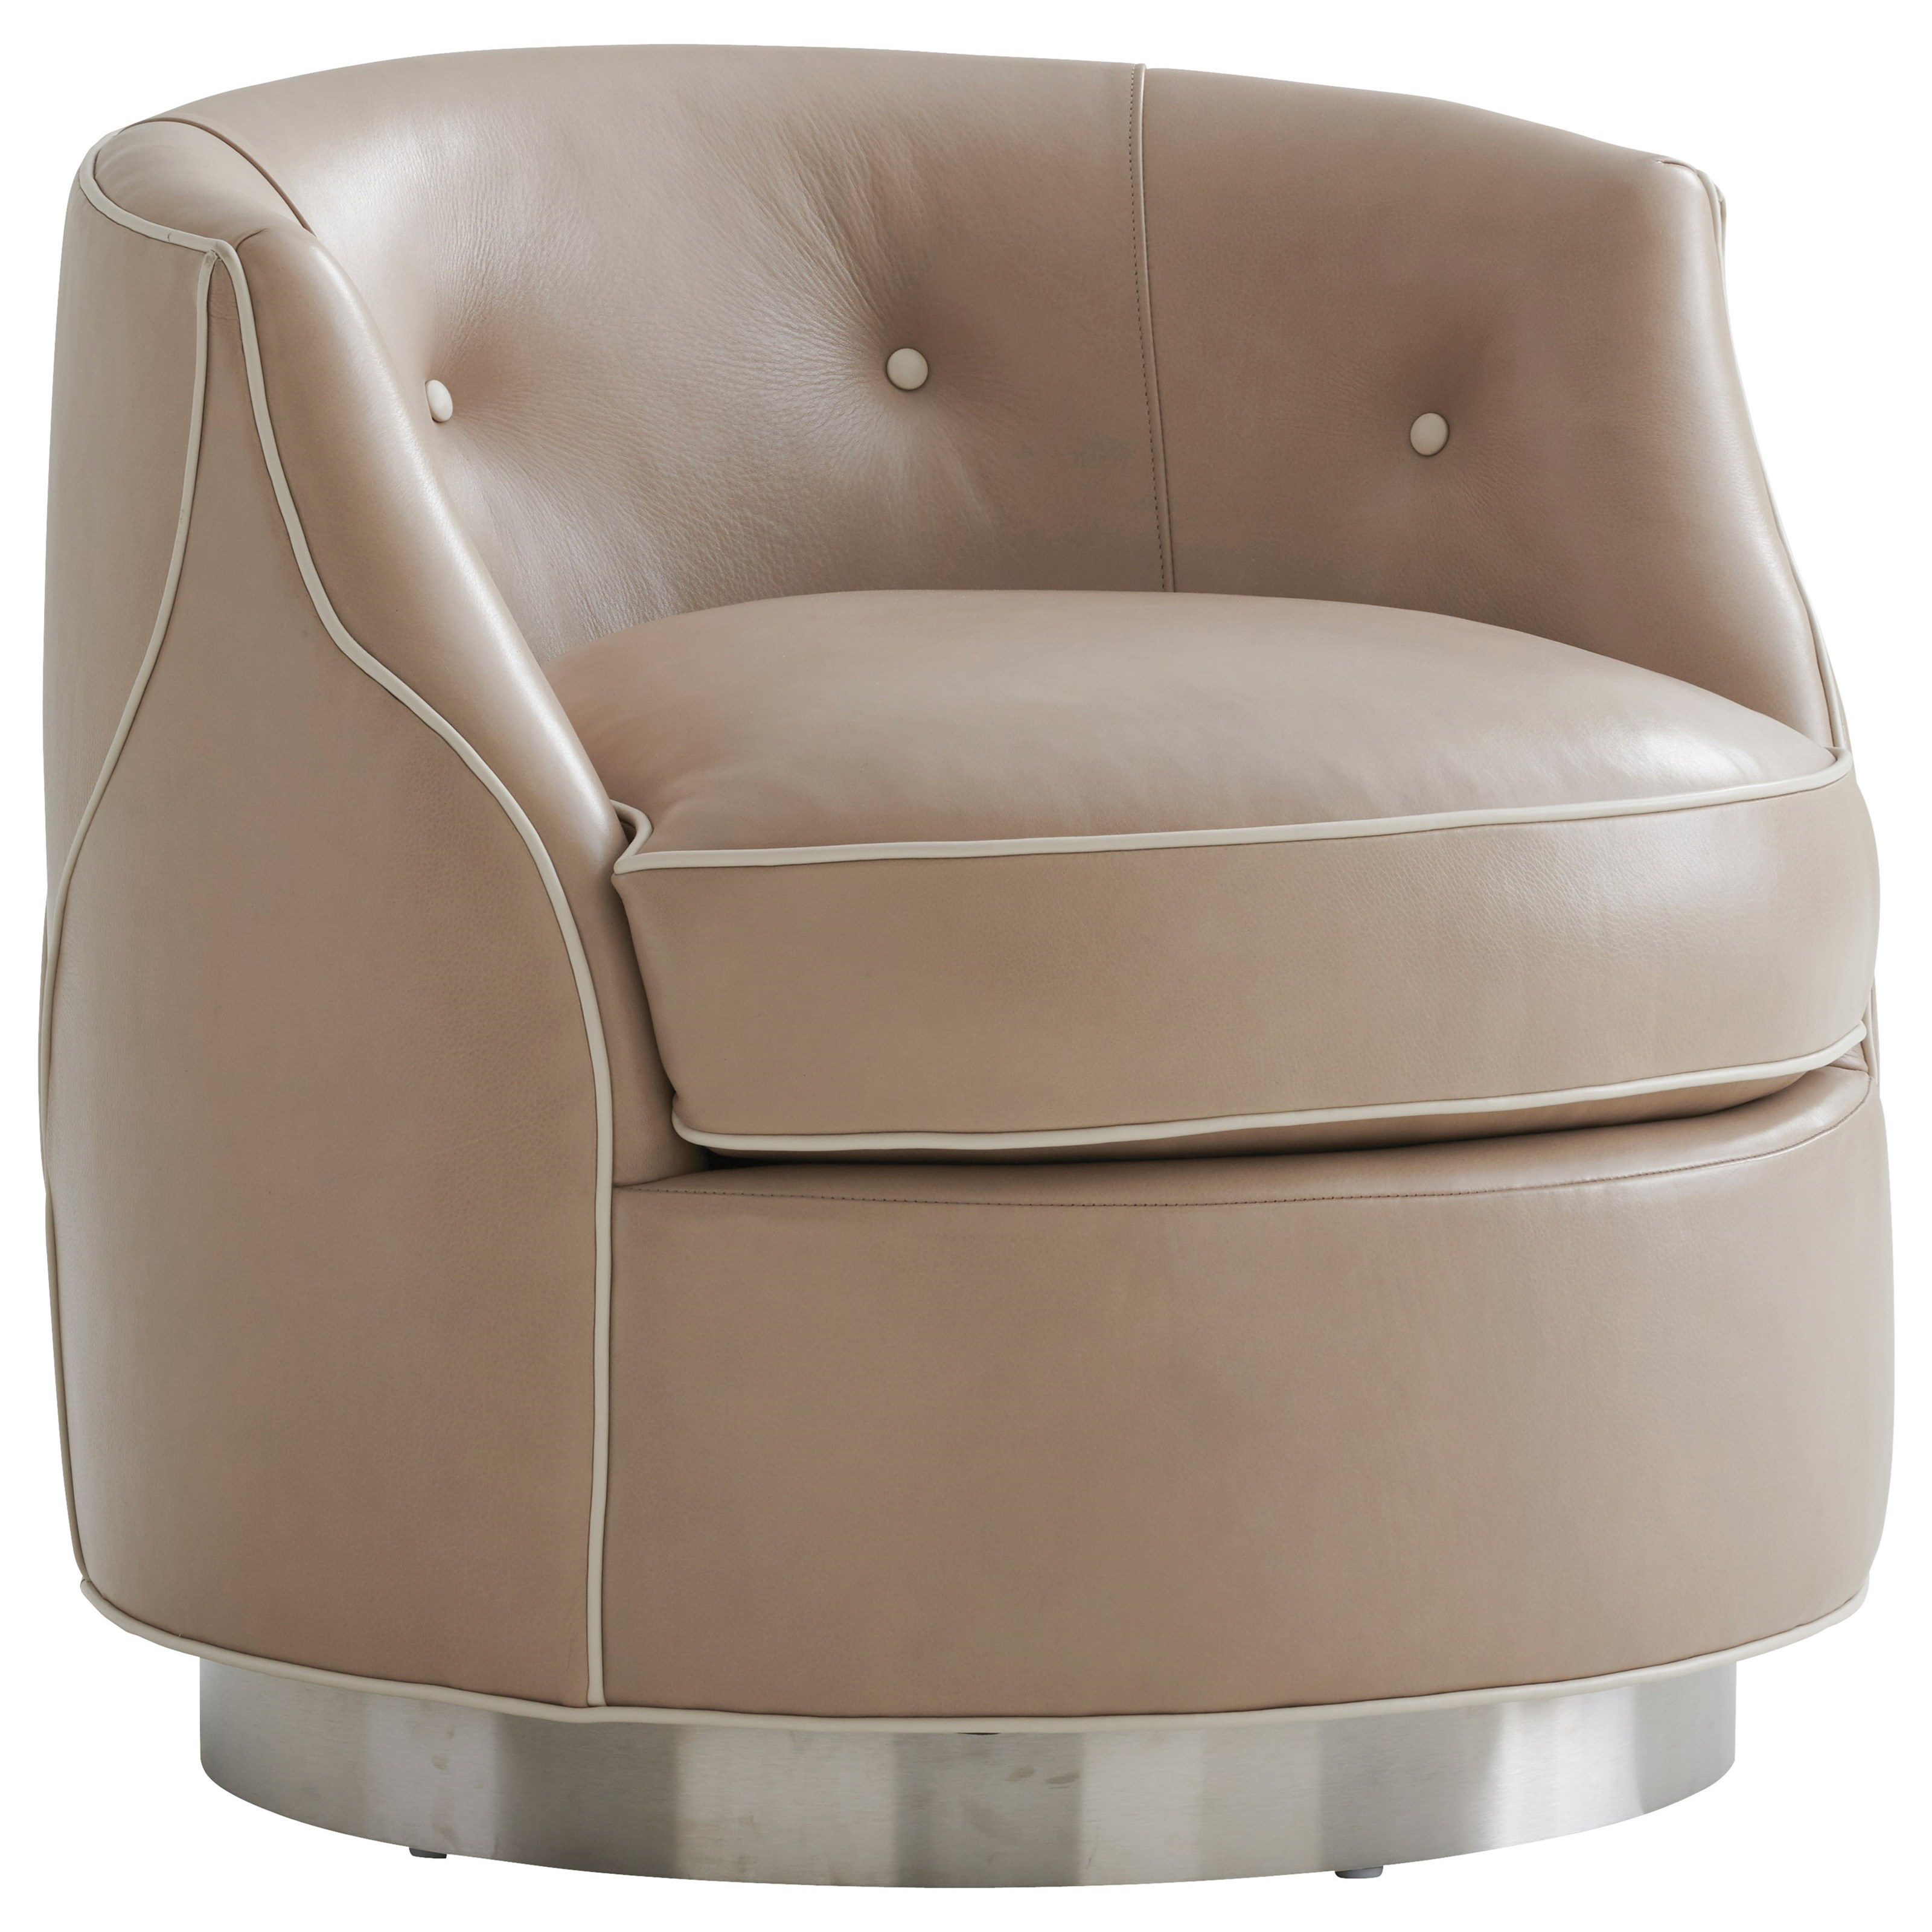 Avondale Robertson Swivel Chair by Lexington at Fisher Home Furnishings